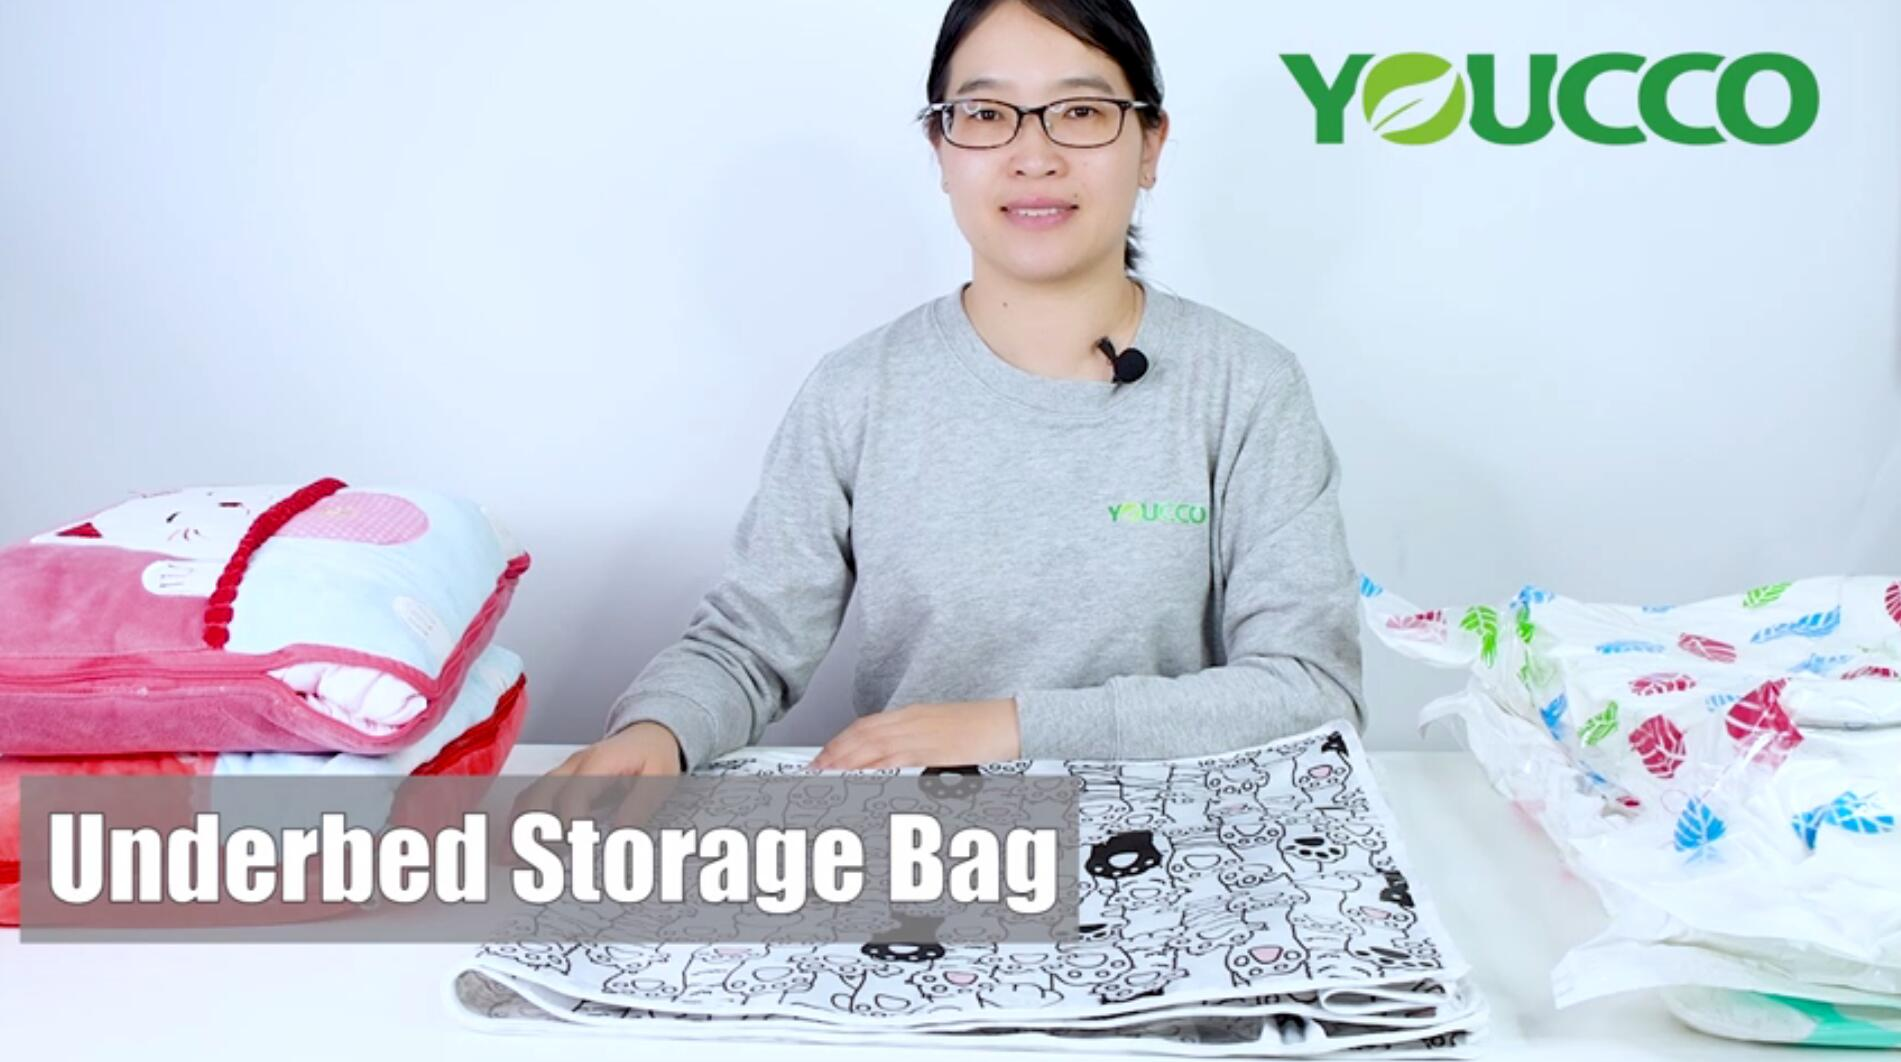 Professional  Underbed Storage Bag with Handle for Organization manufacturers - YOUCCO